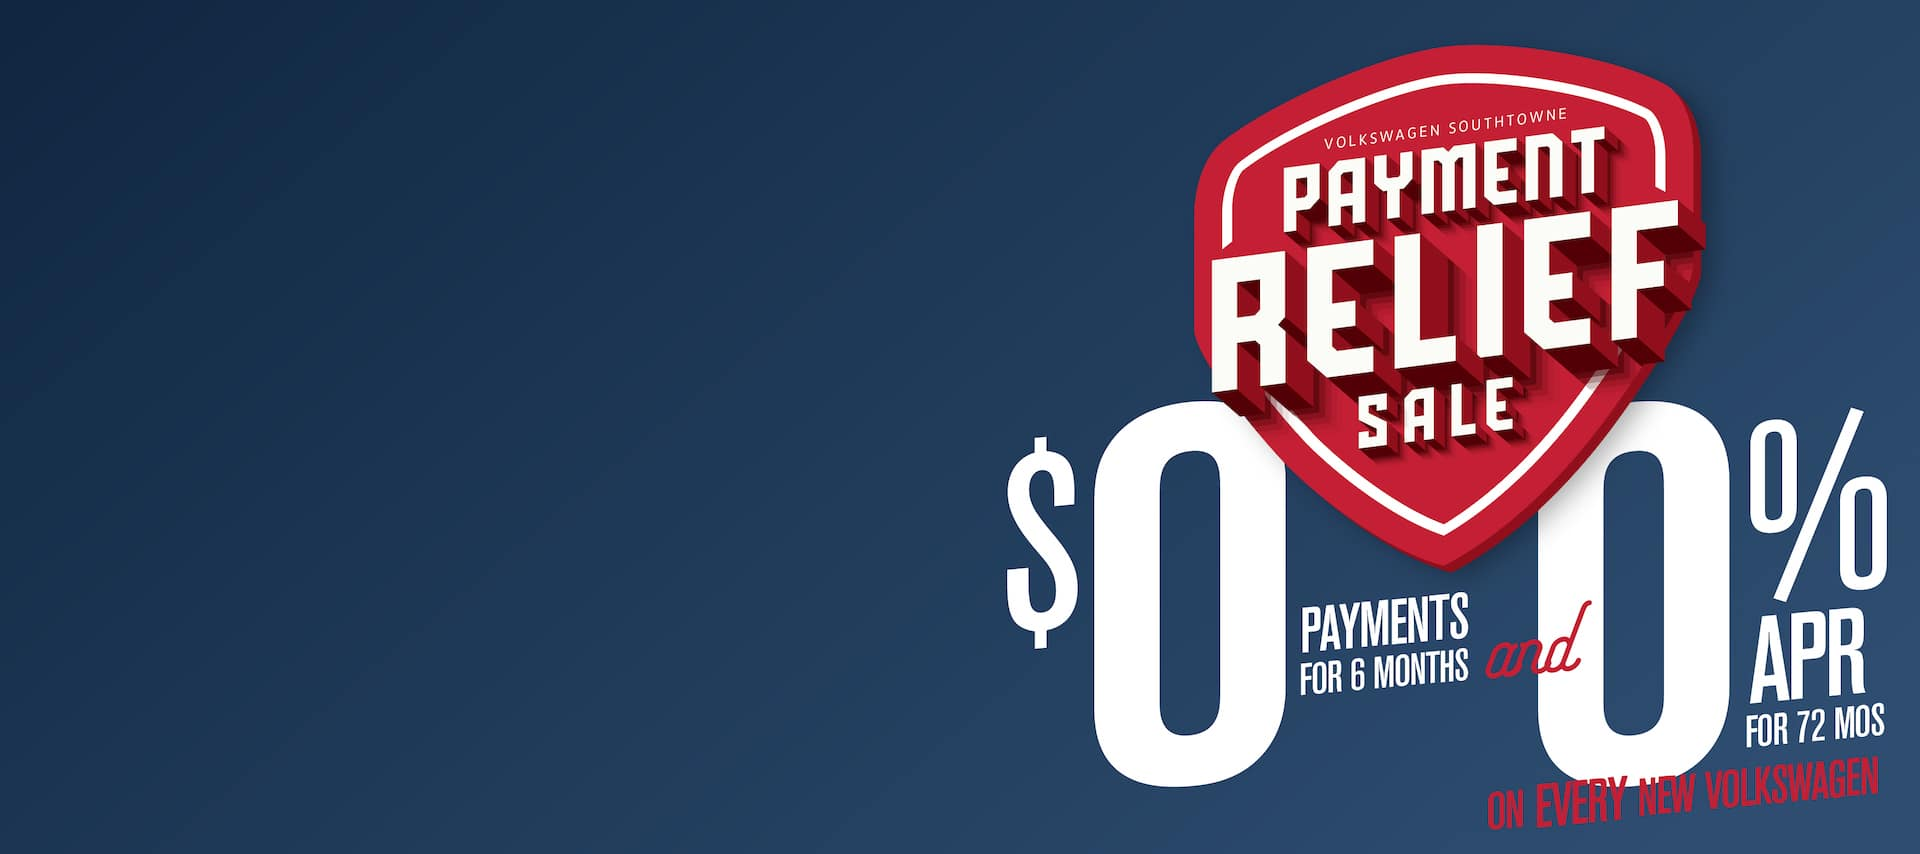 Get Payment Relief! No Payments for 6 months! and 0% APR for 6 years!